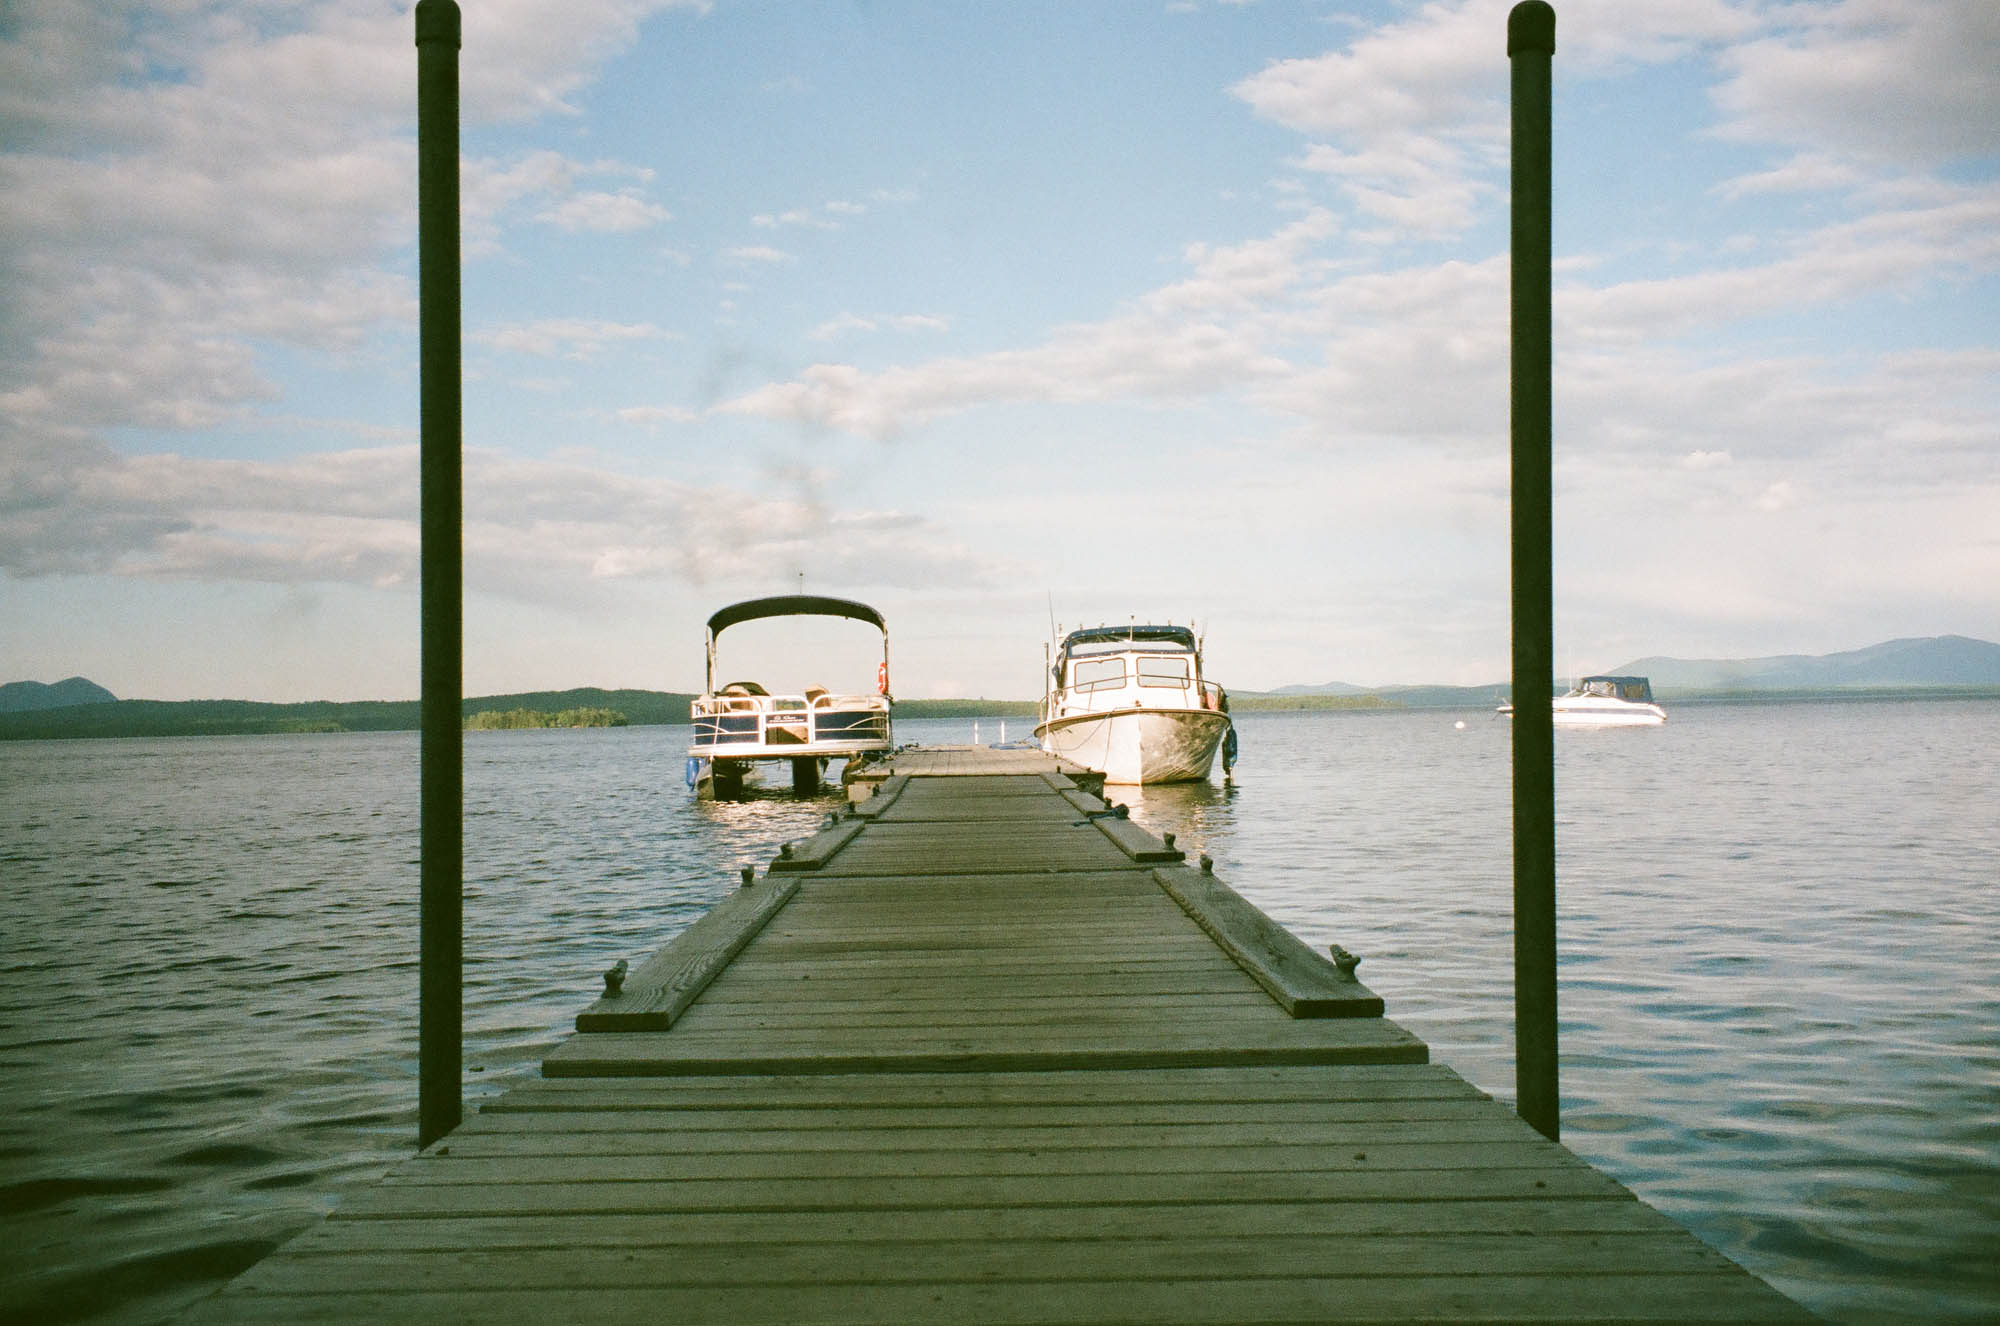 Minolta XG-M shot at 400 of boat docks